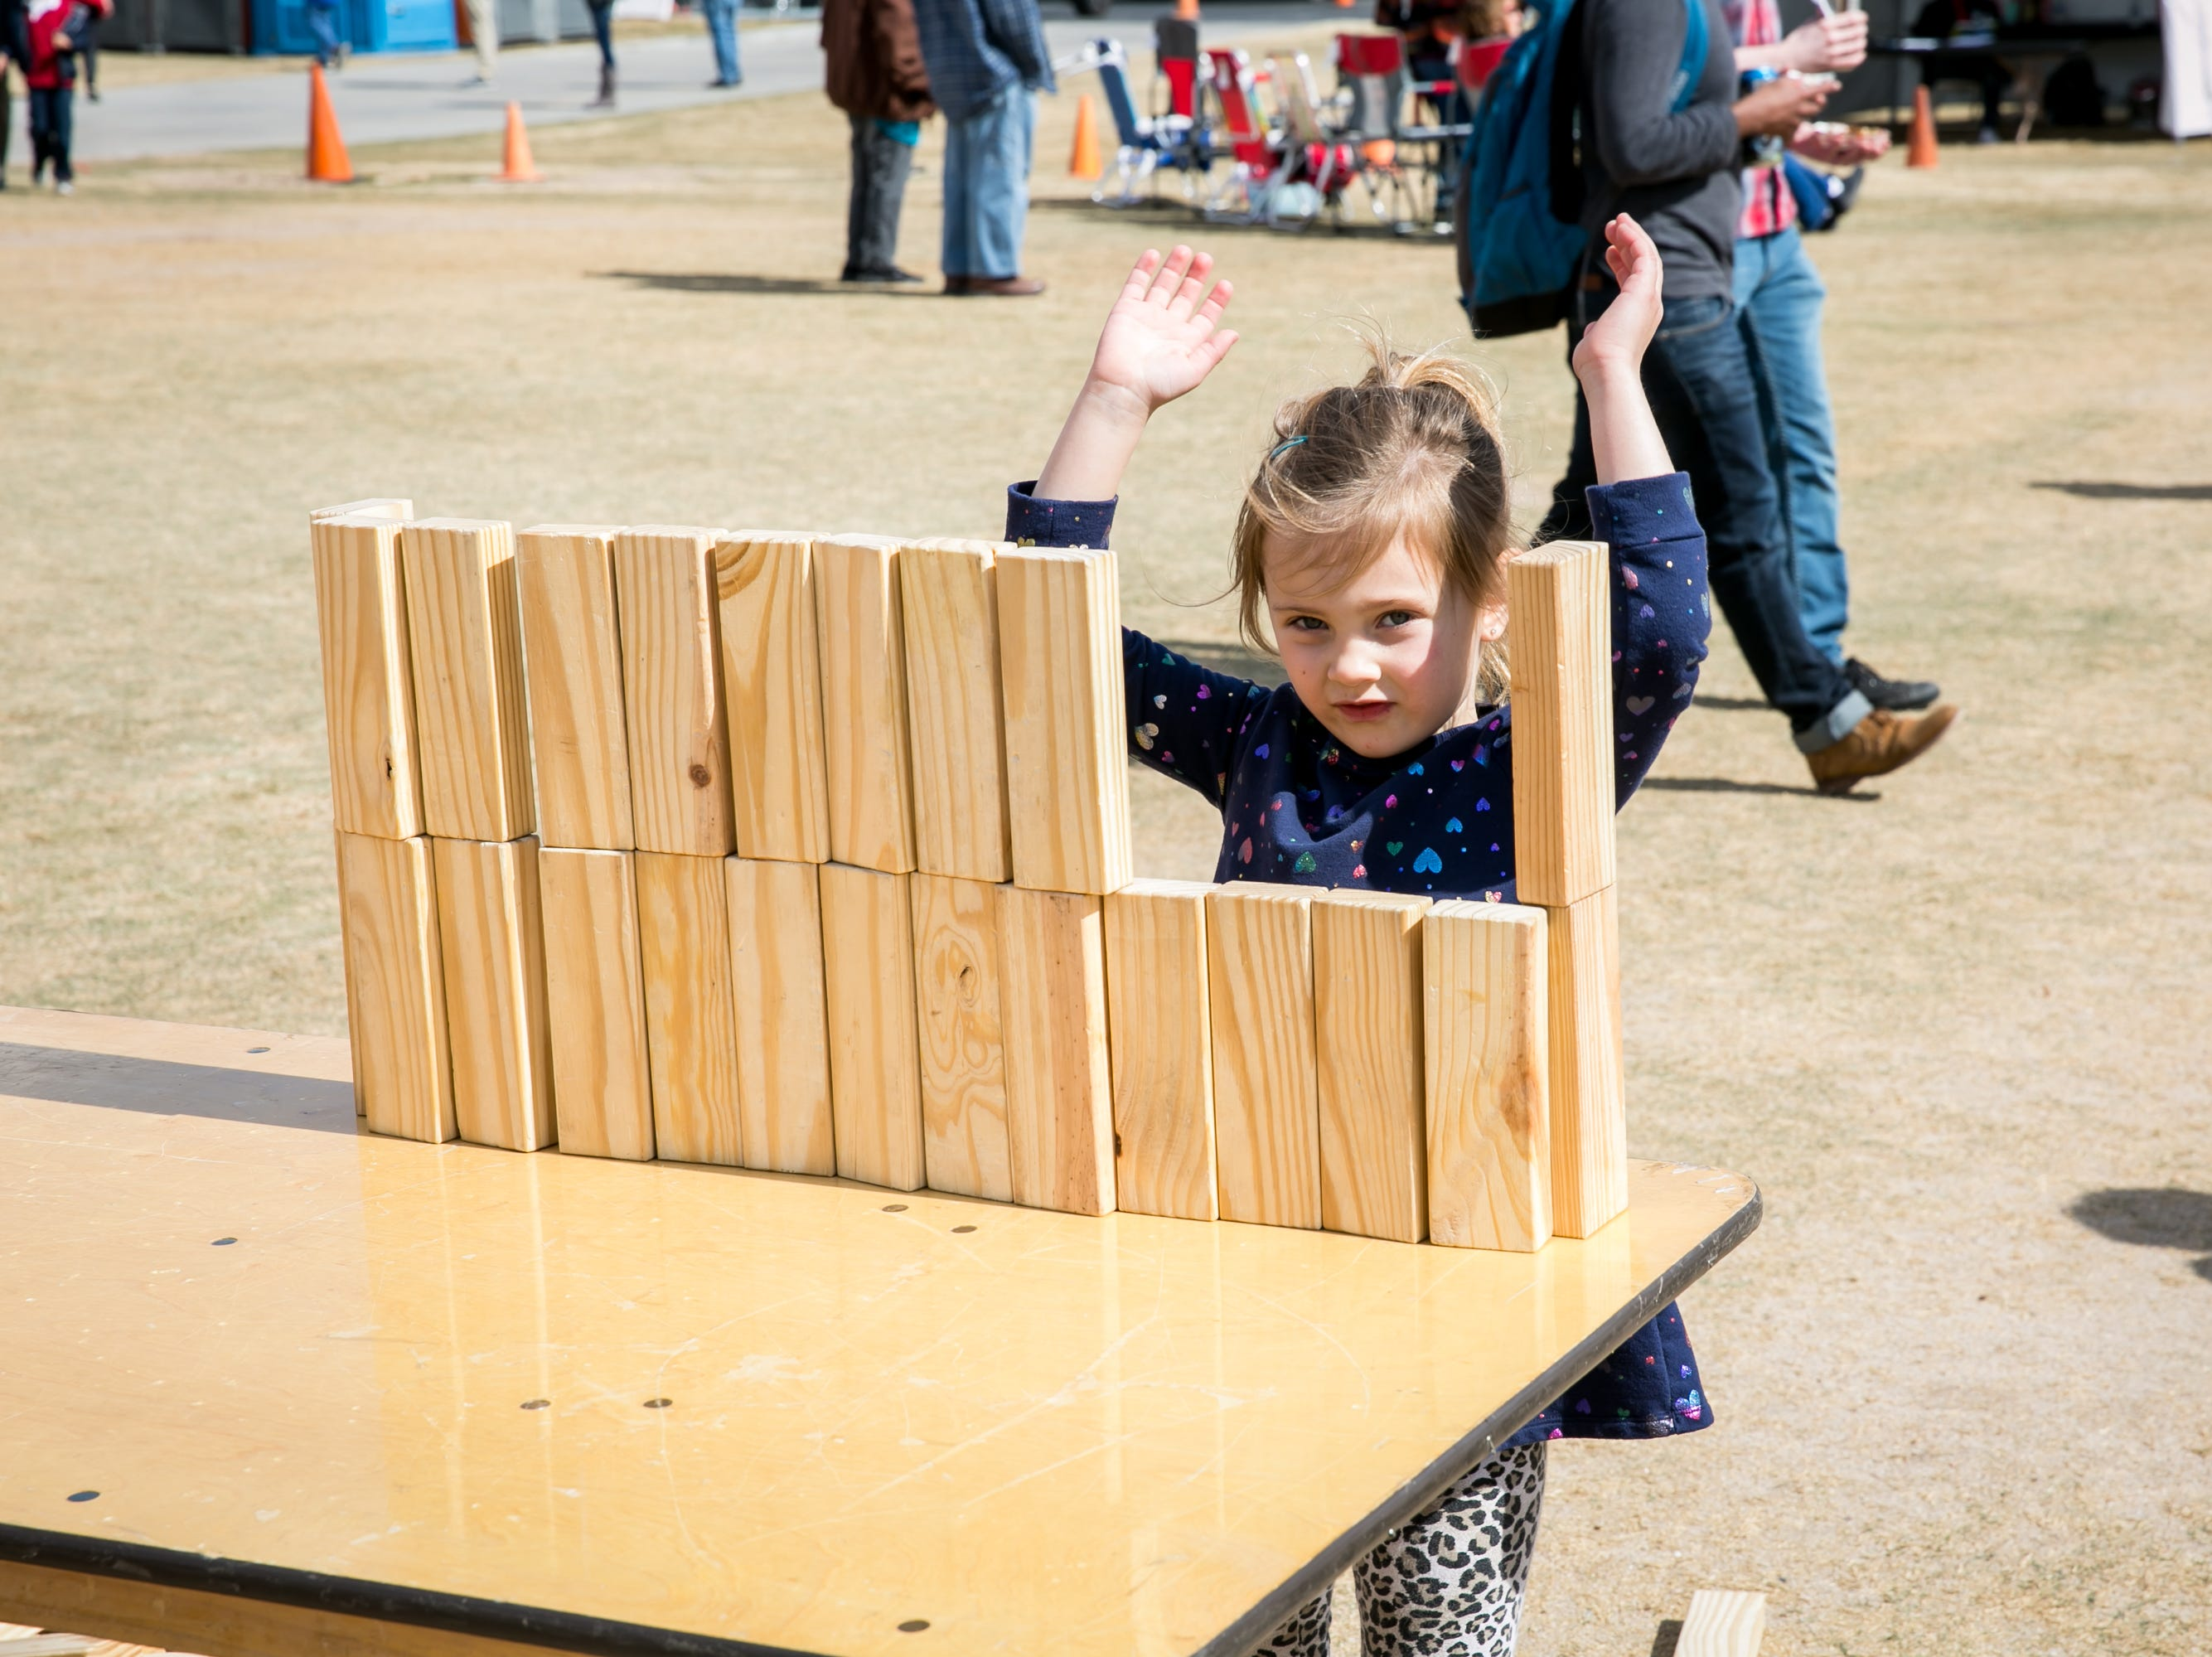 Parker, age 4, had fun during the Street Eats Food Truck Festival at Salt River Fields near Scottsdale on Feb. 17, 2019.